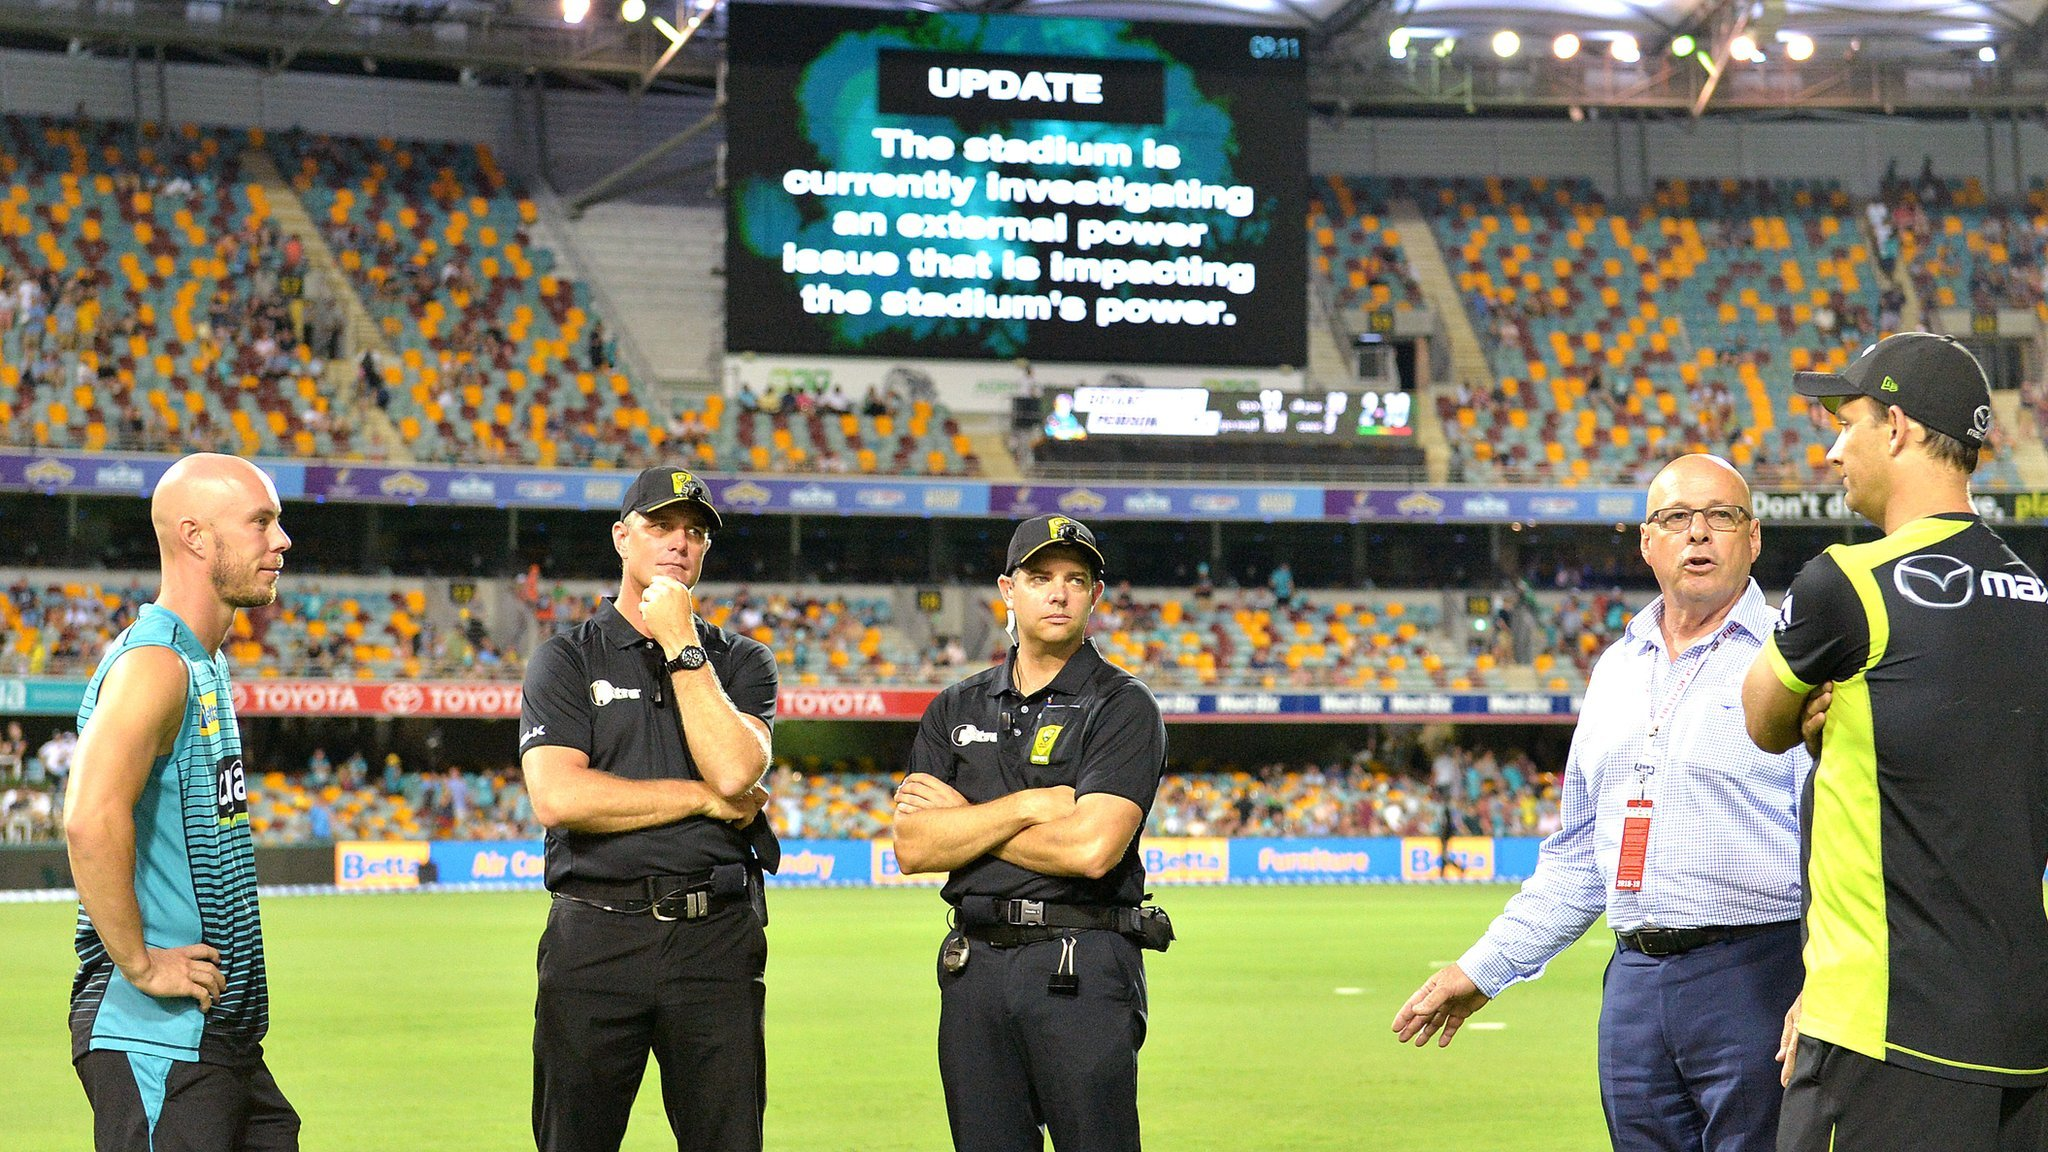 Big Bash match abandoned after power failure